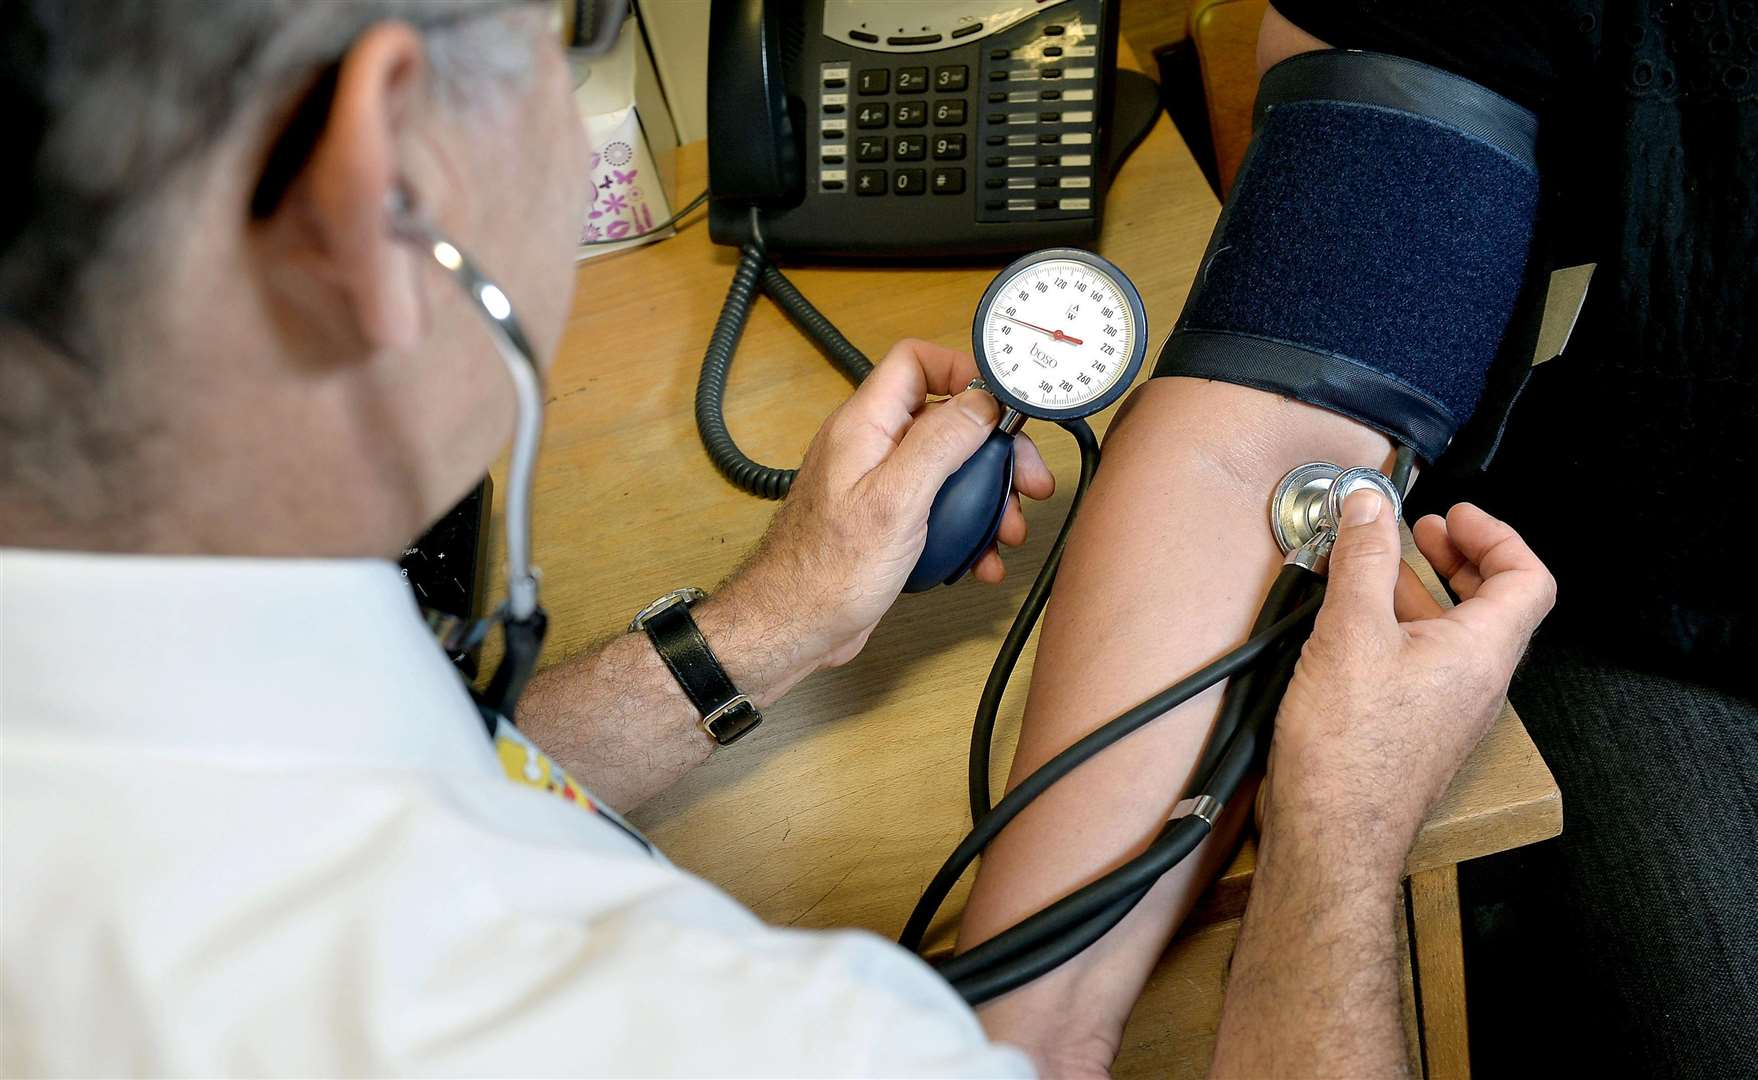 Patients will be able to see a GP or nurse at a time that better suits them under a new initiative in West Norfolk